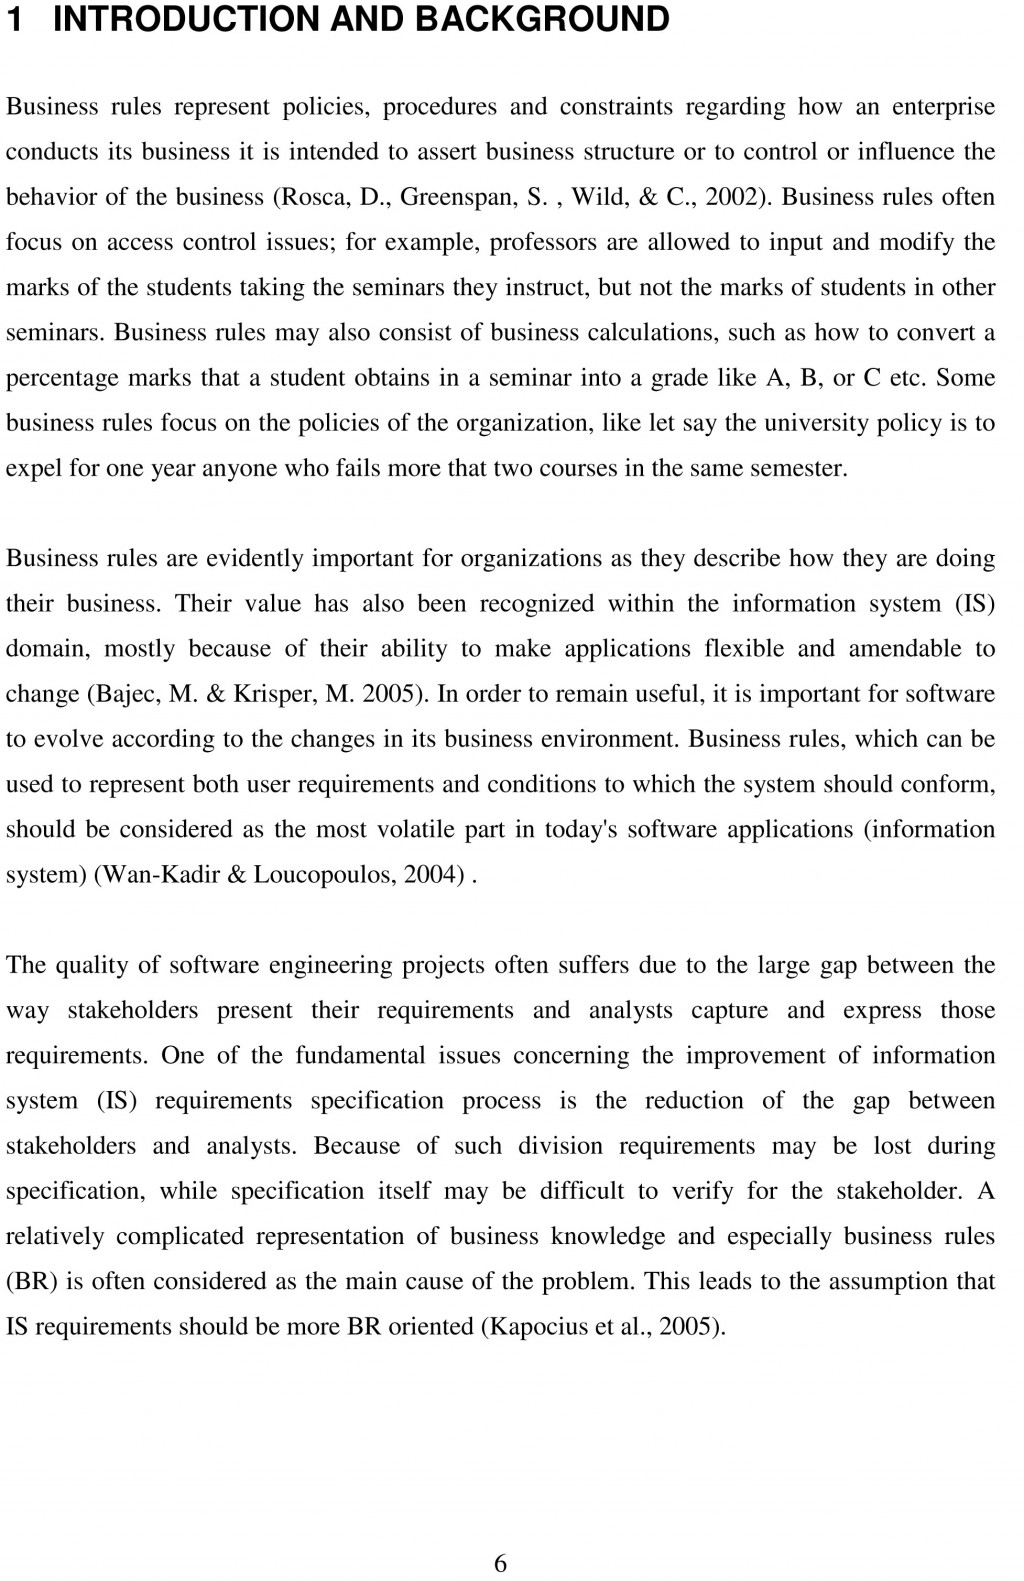 015 Research Paper Quality Thesis Free Sample Argumentative Topics On Singular Literature Large